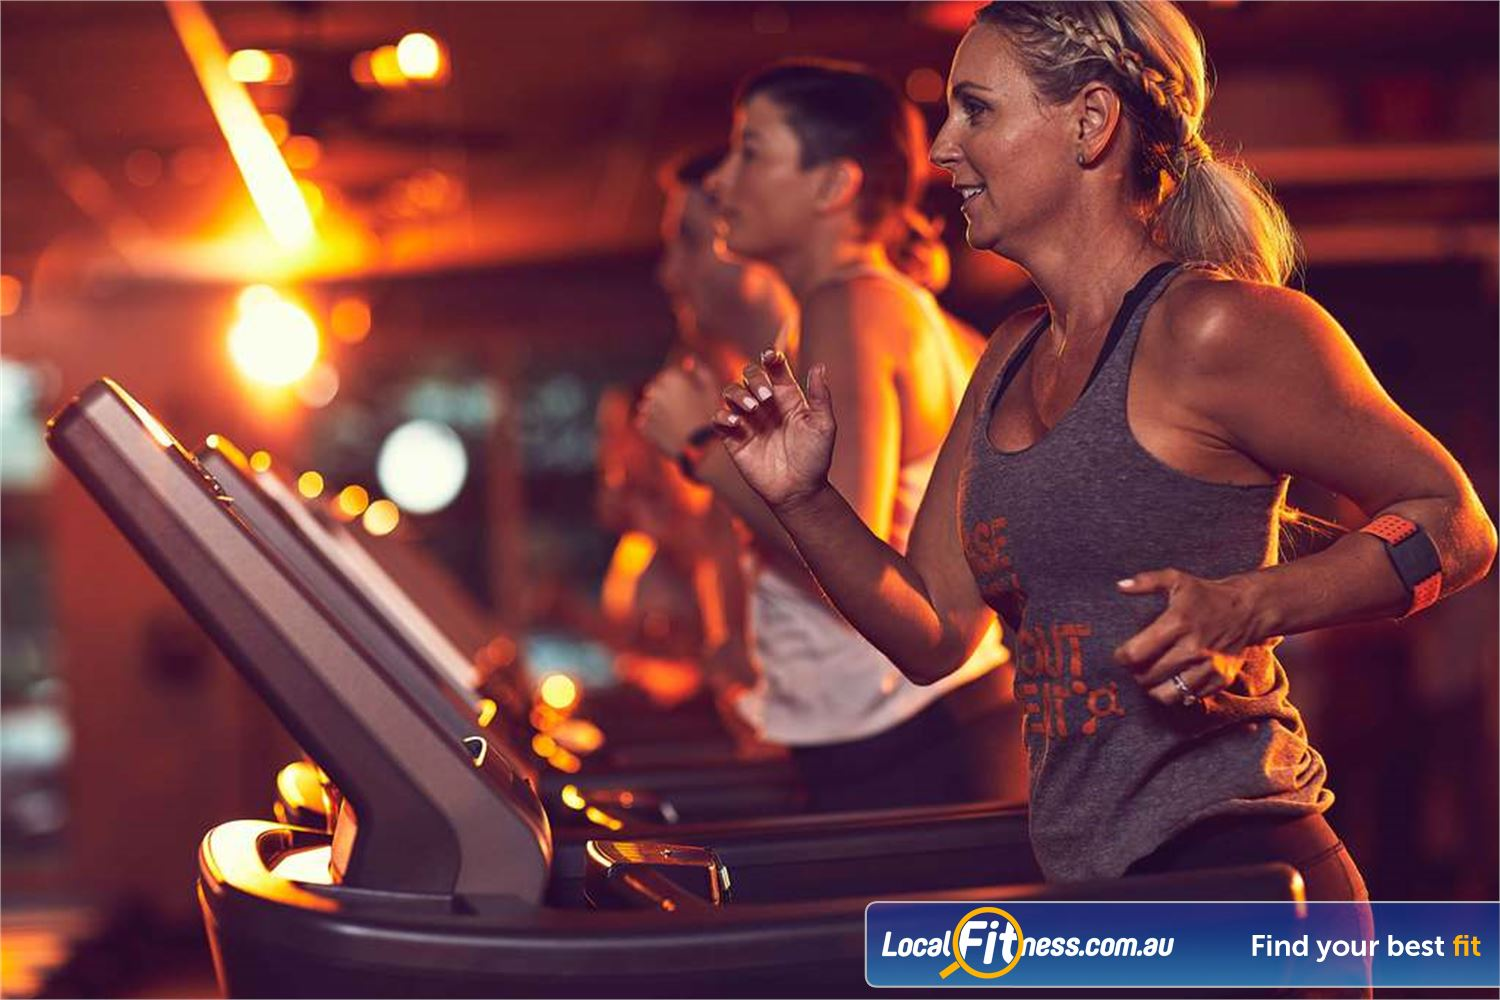 Orangetheory Fitness South Yarra Our signature Orange lighting provides an energetic workout atmosphere.